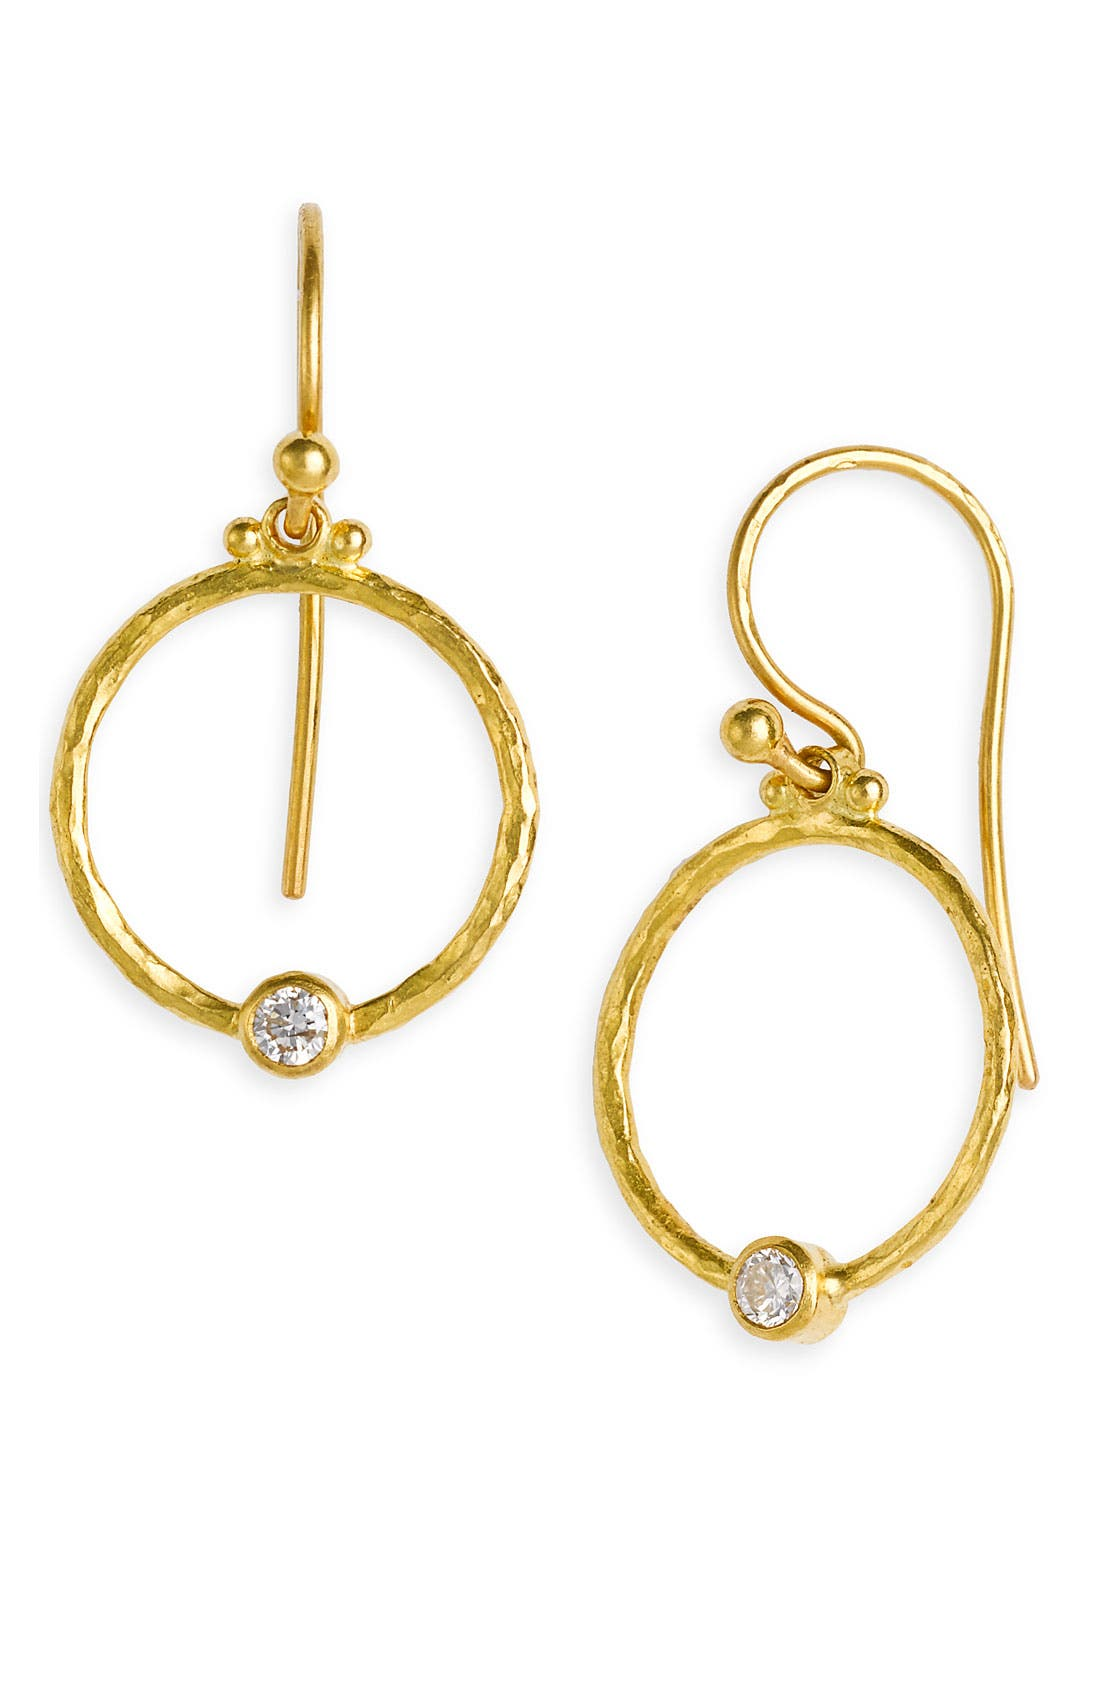 Main Image - Gurhan 'Clover' Diamond Accent Hoop Earrings